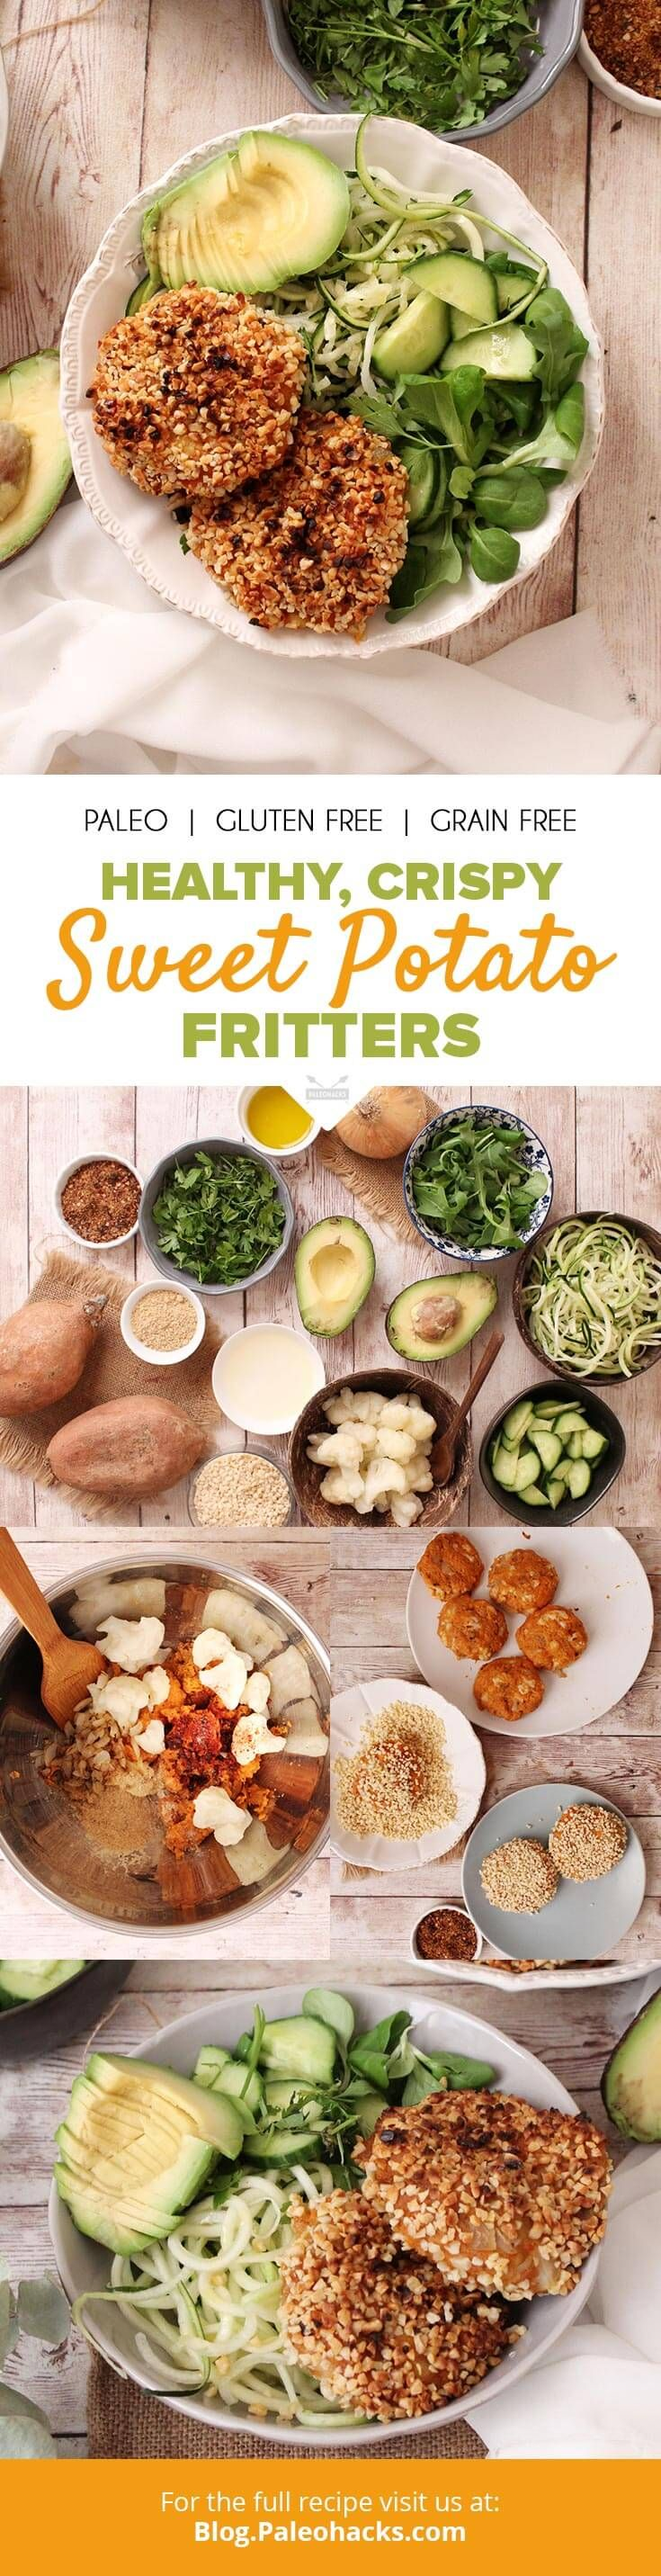 These healthy sweet potato fritters pack steamed cauliflower,almonds and flax seeds into crispy patties for a nutritious, savory meal. Get the recipe here: http://paleo.co/SWPfritters